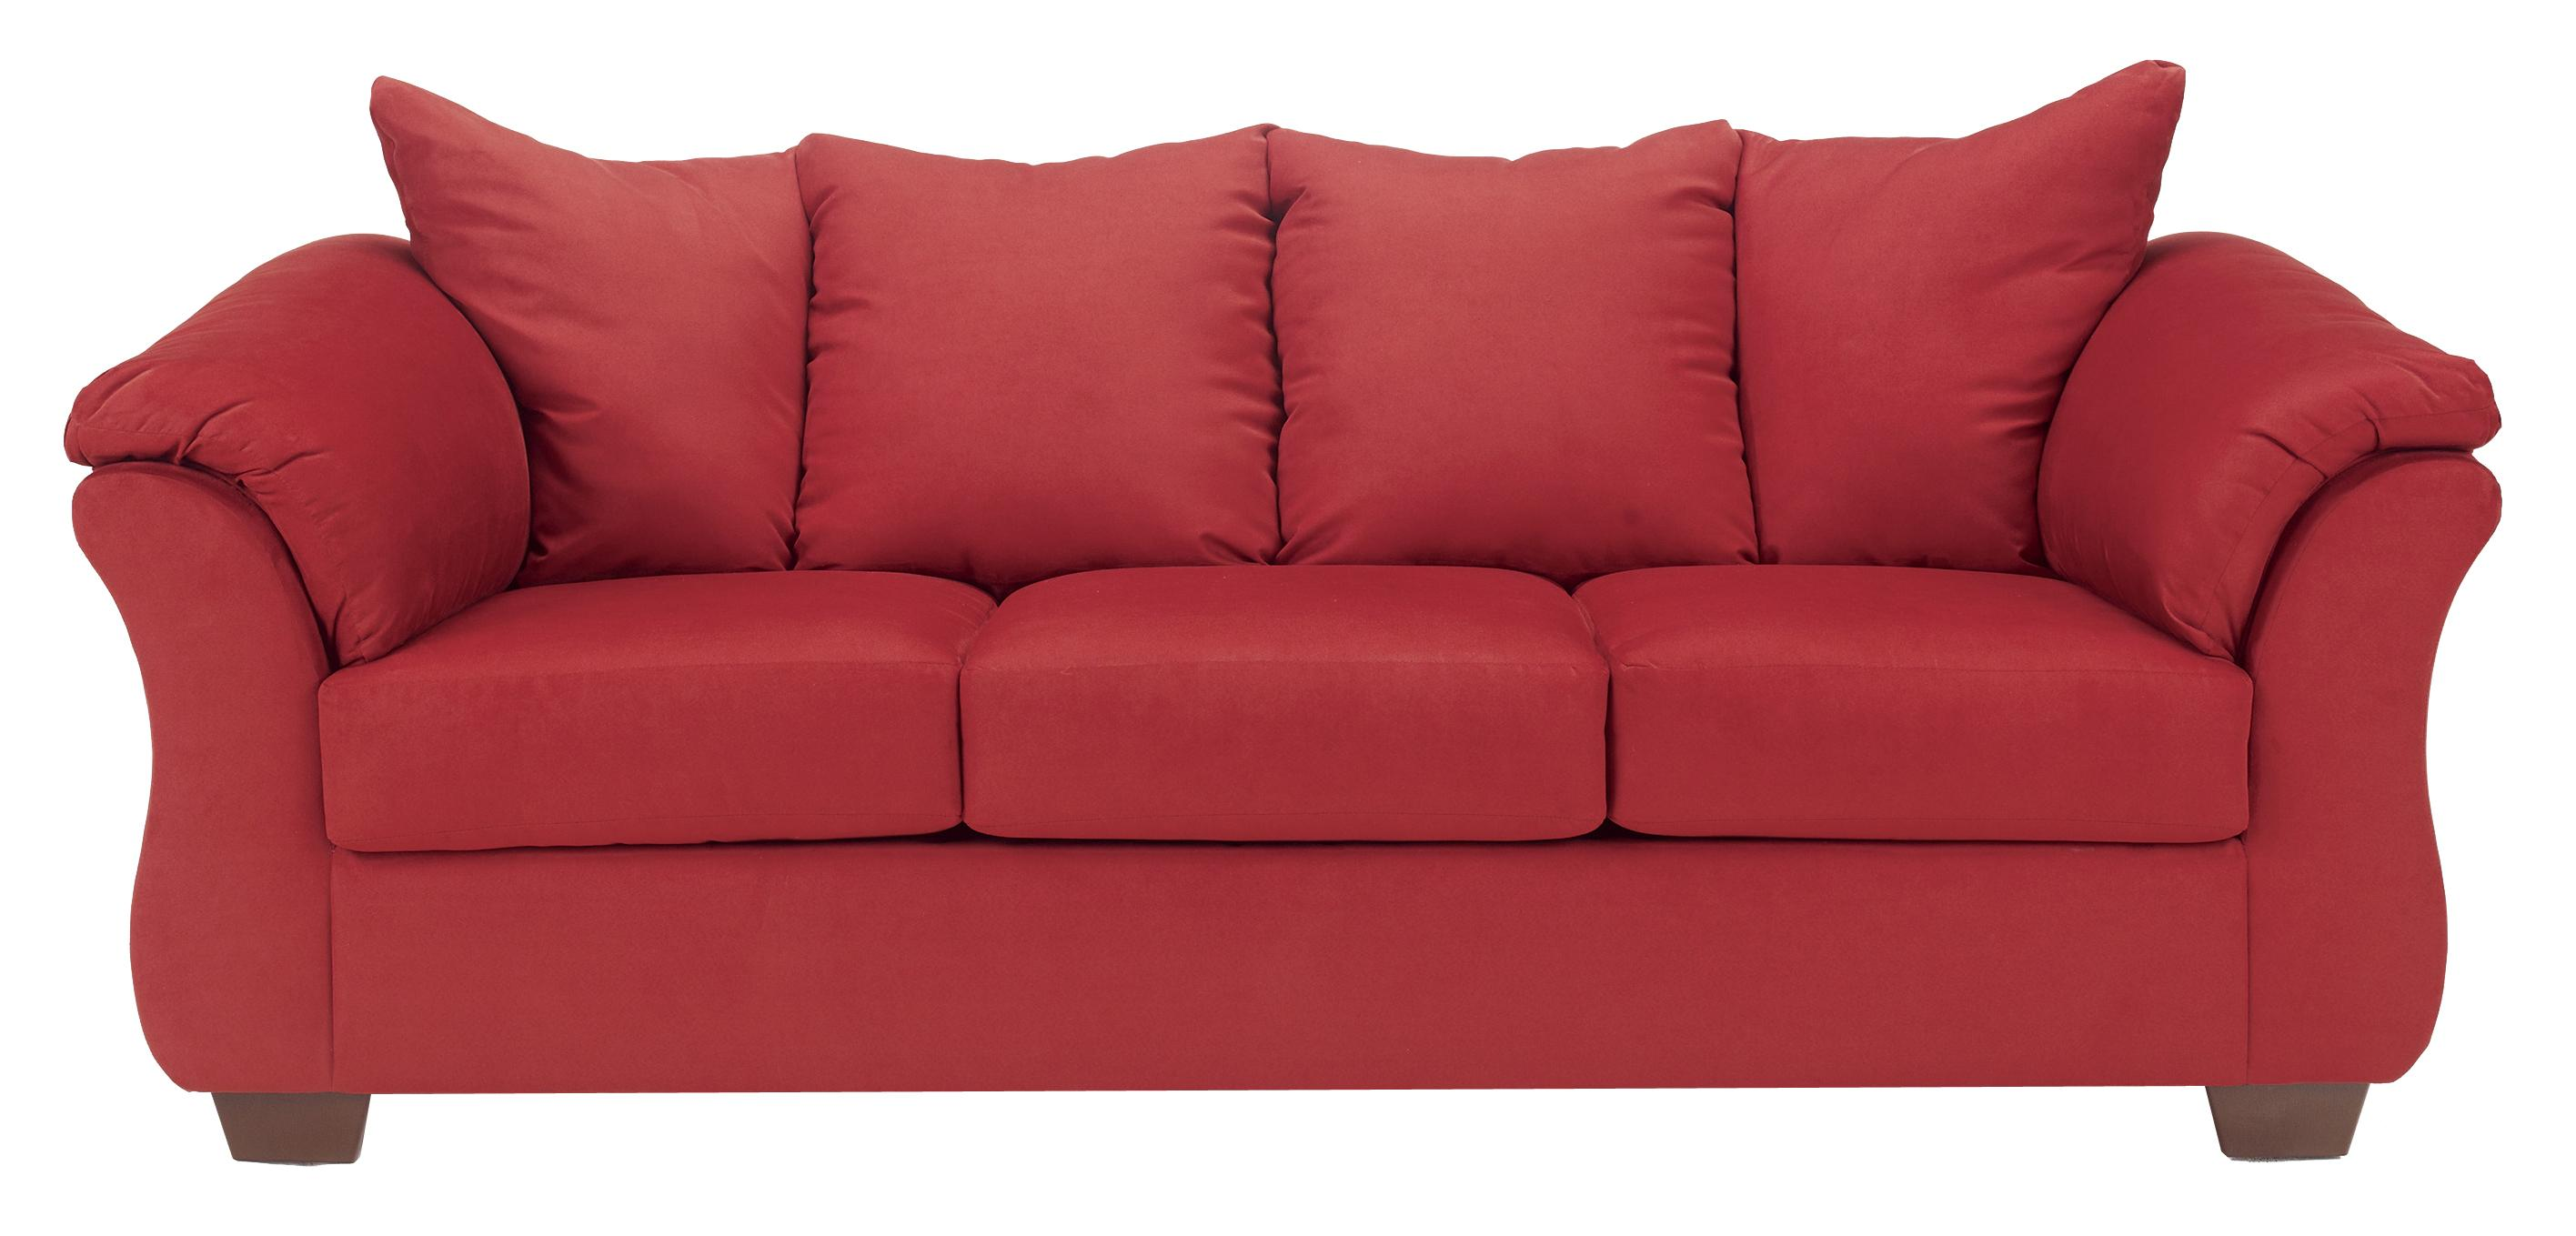 Signature Design By Ashley Darcy Salsa Contemporary Stationary Sofa With Flared Back Pillows